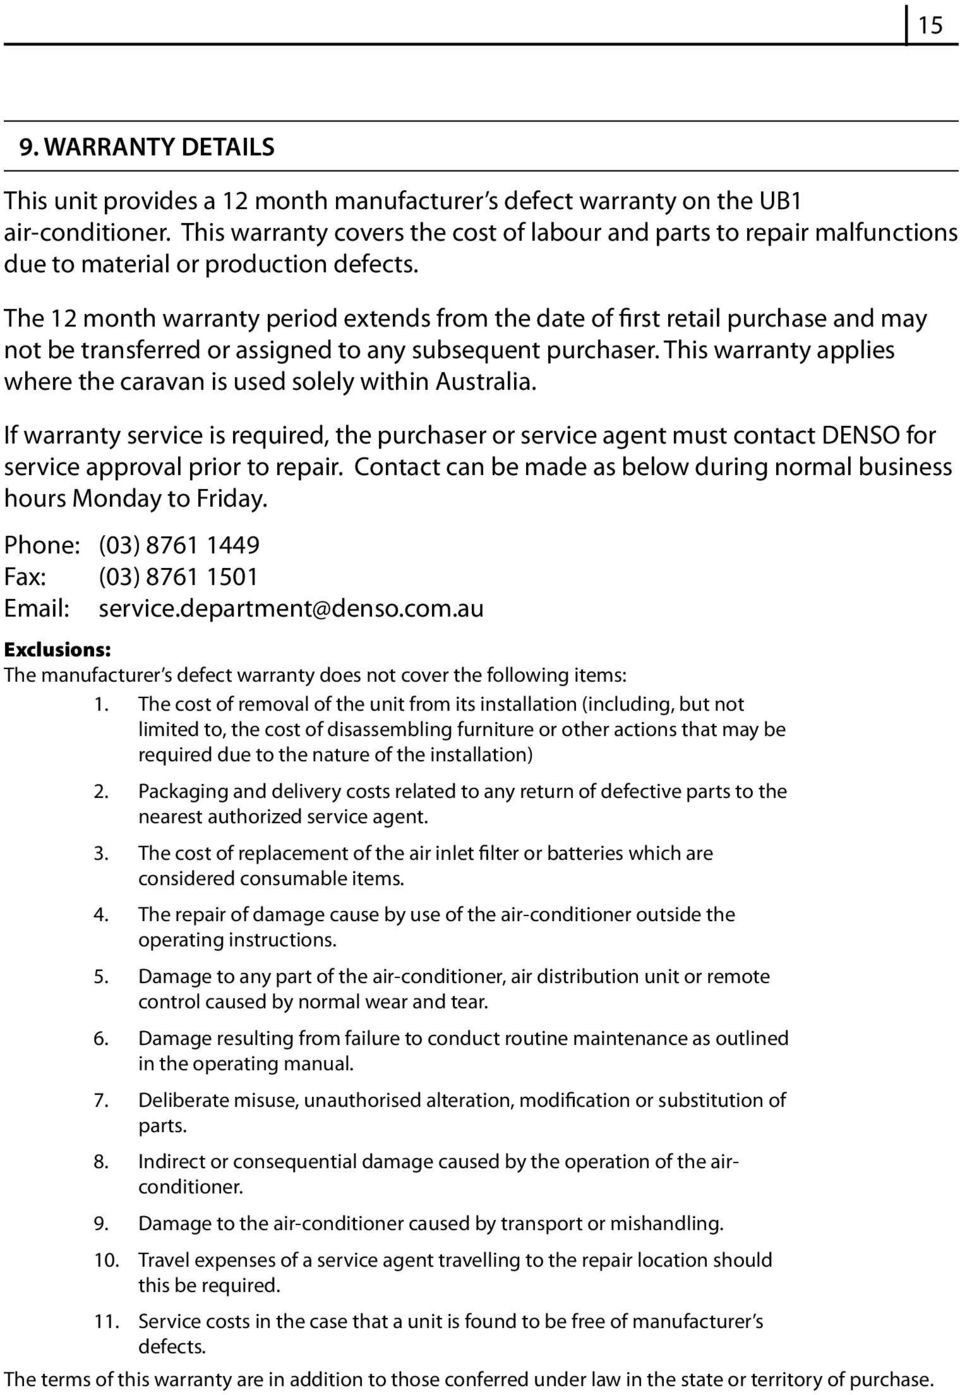 Ub1 air conditioning unit operating manual pdf the 12 month warranty period extends from the date of first retail purchase and may not publicscrutiny Images